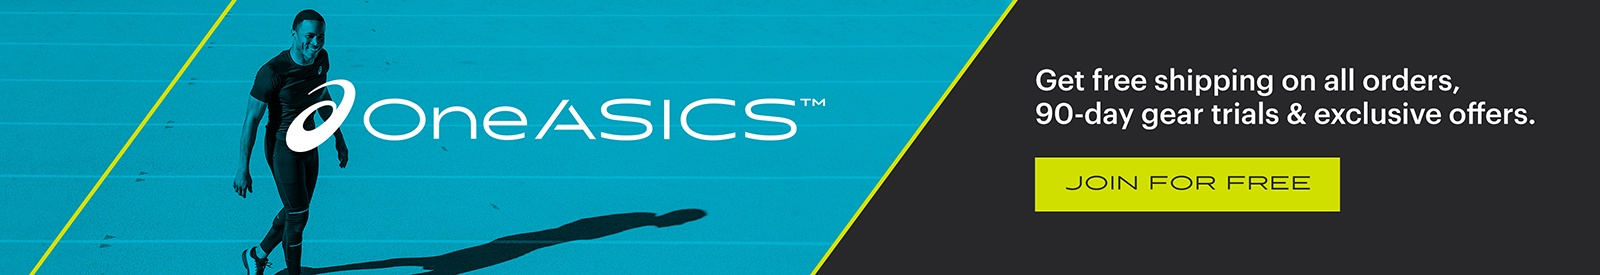 onasics-uk-edesktop